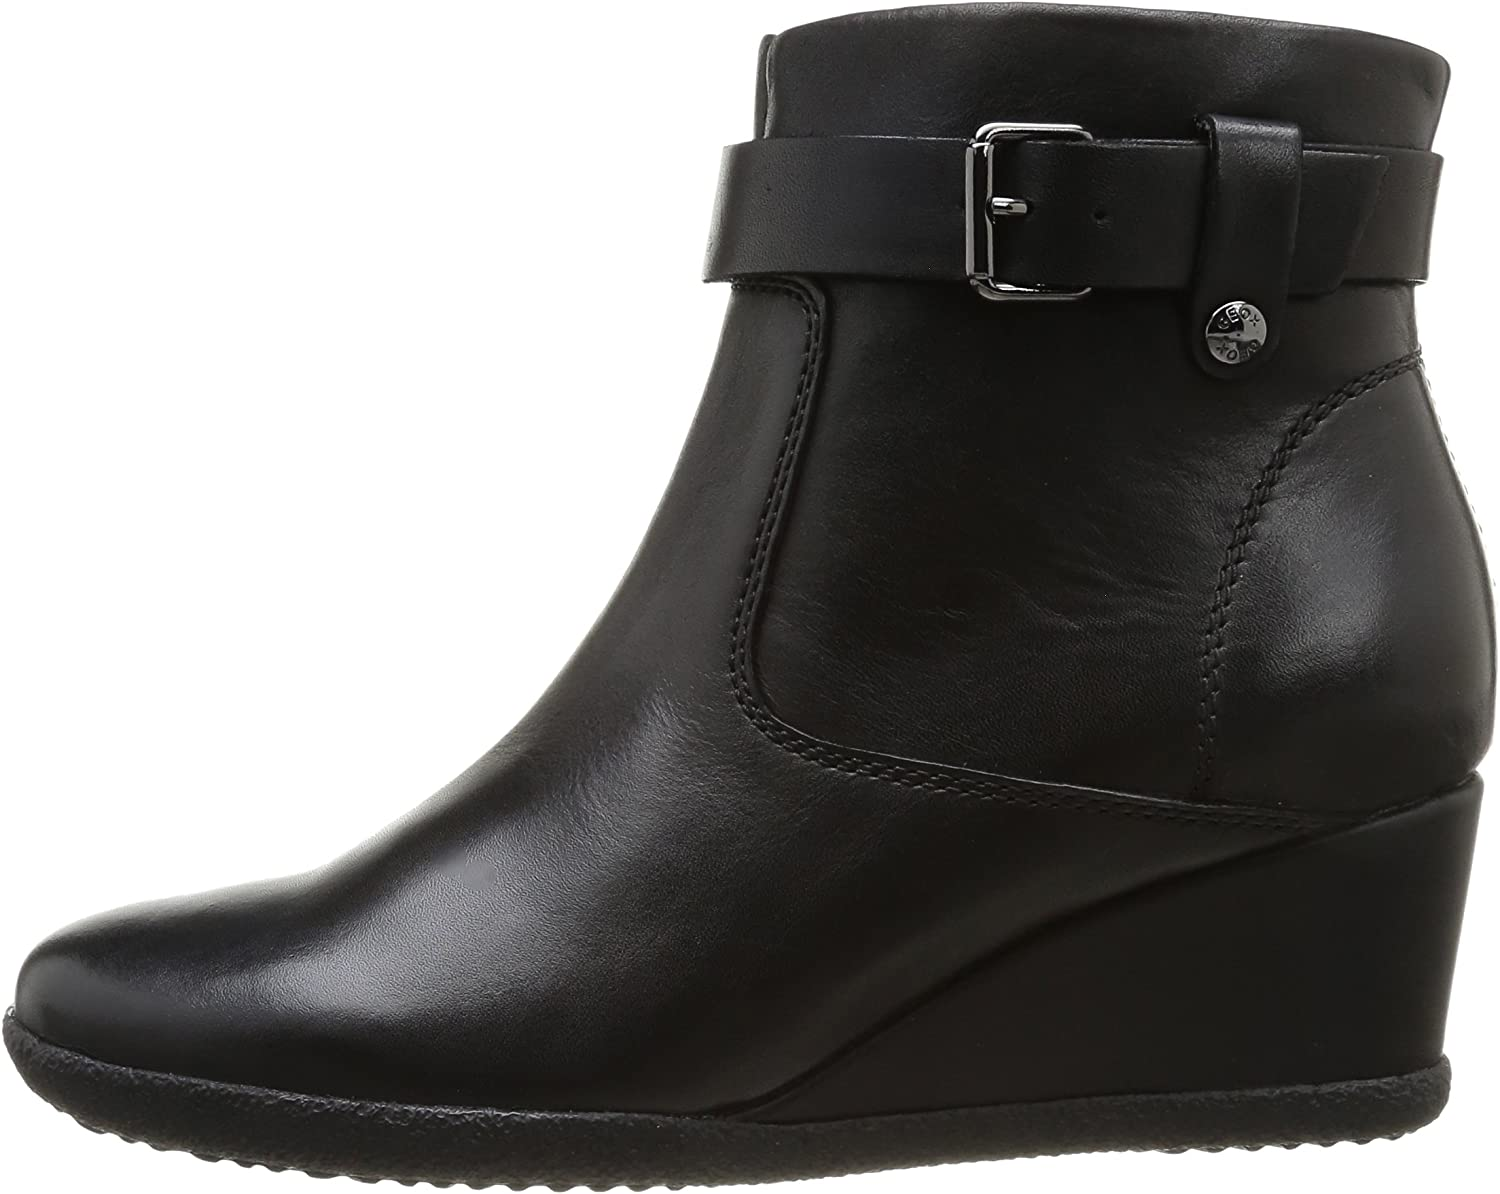 Geox D Amelia Stivali, Boots femme